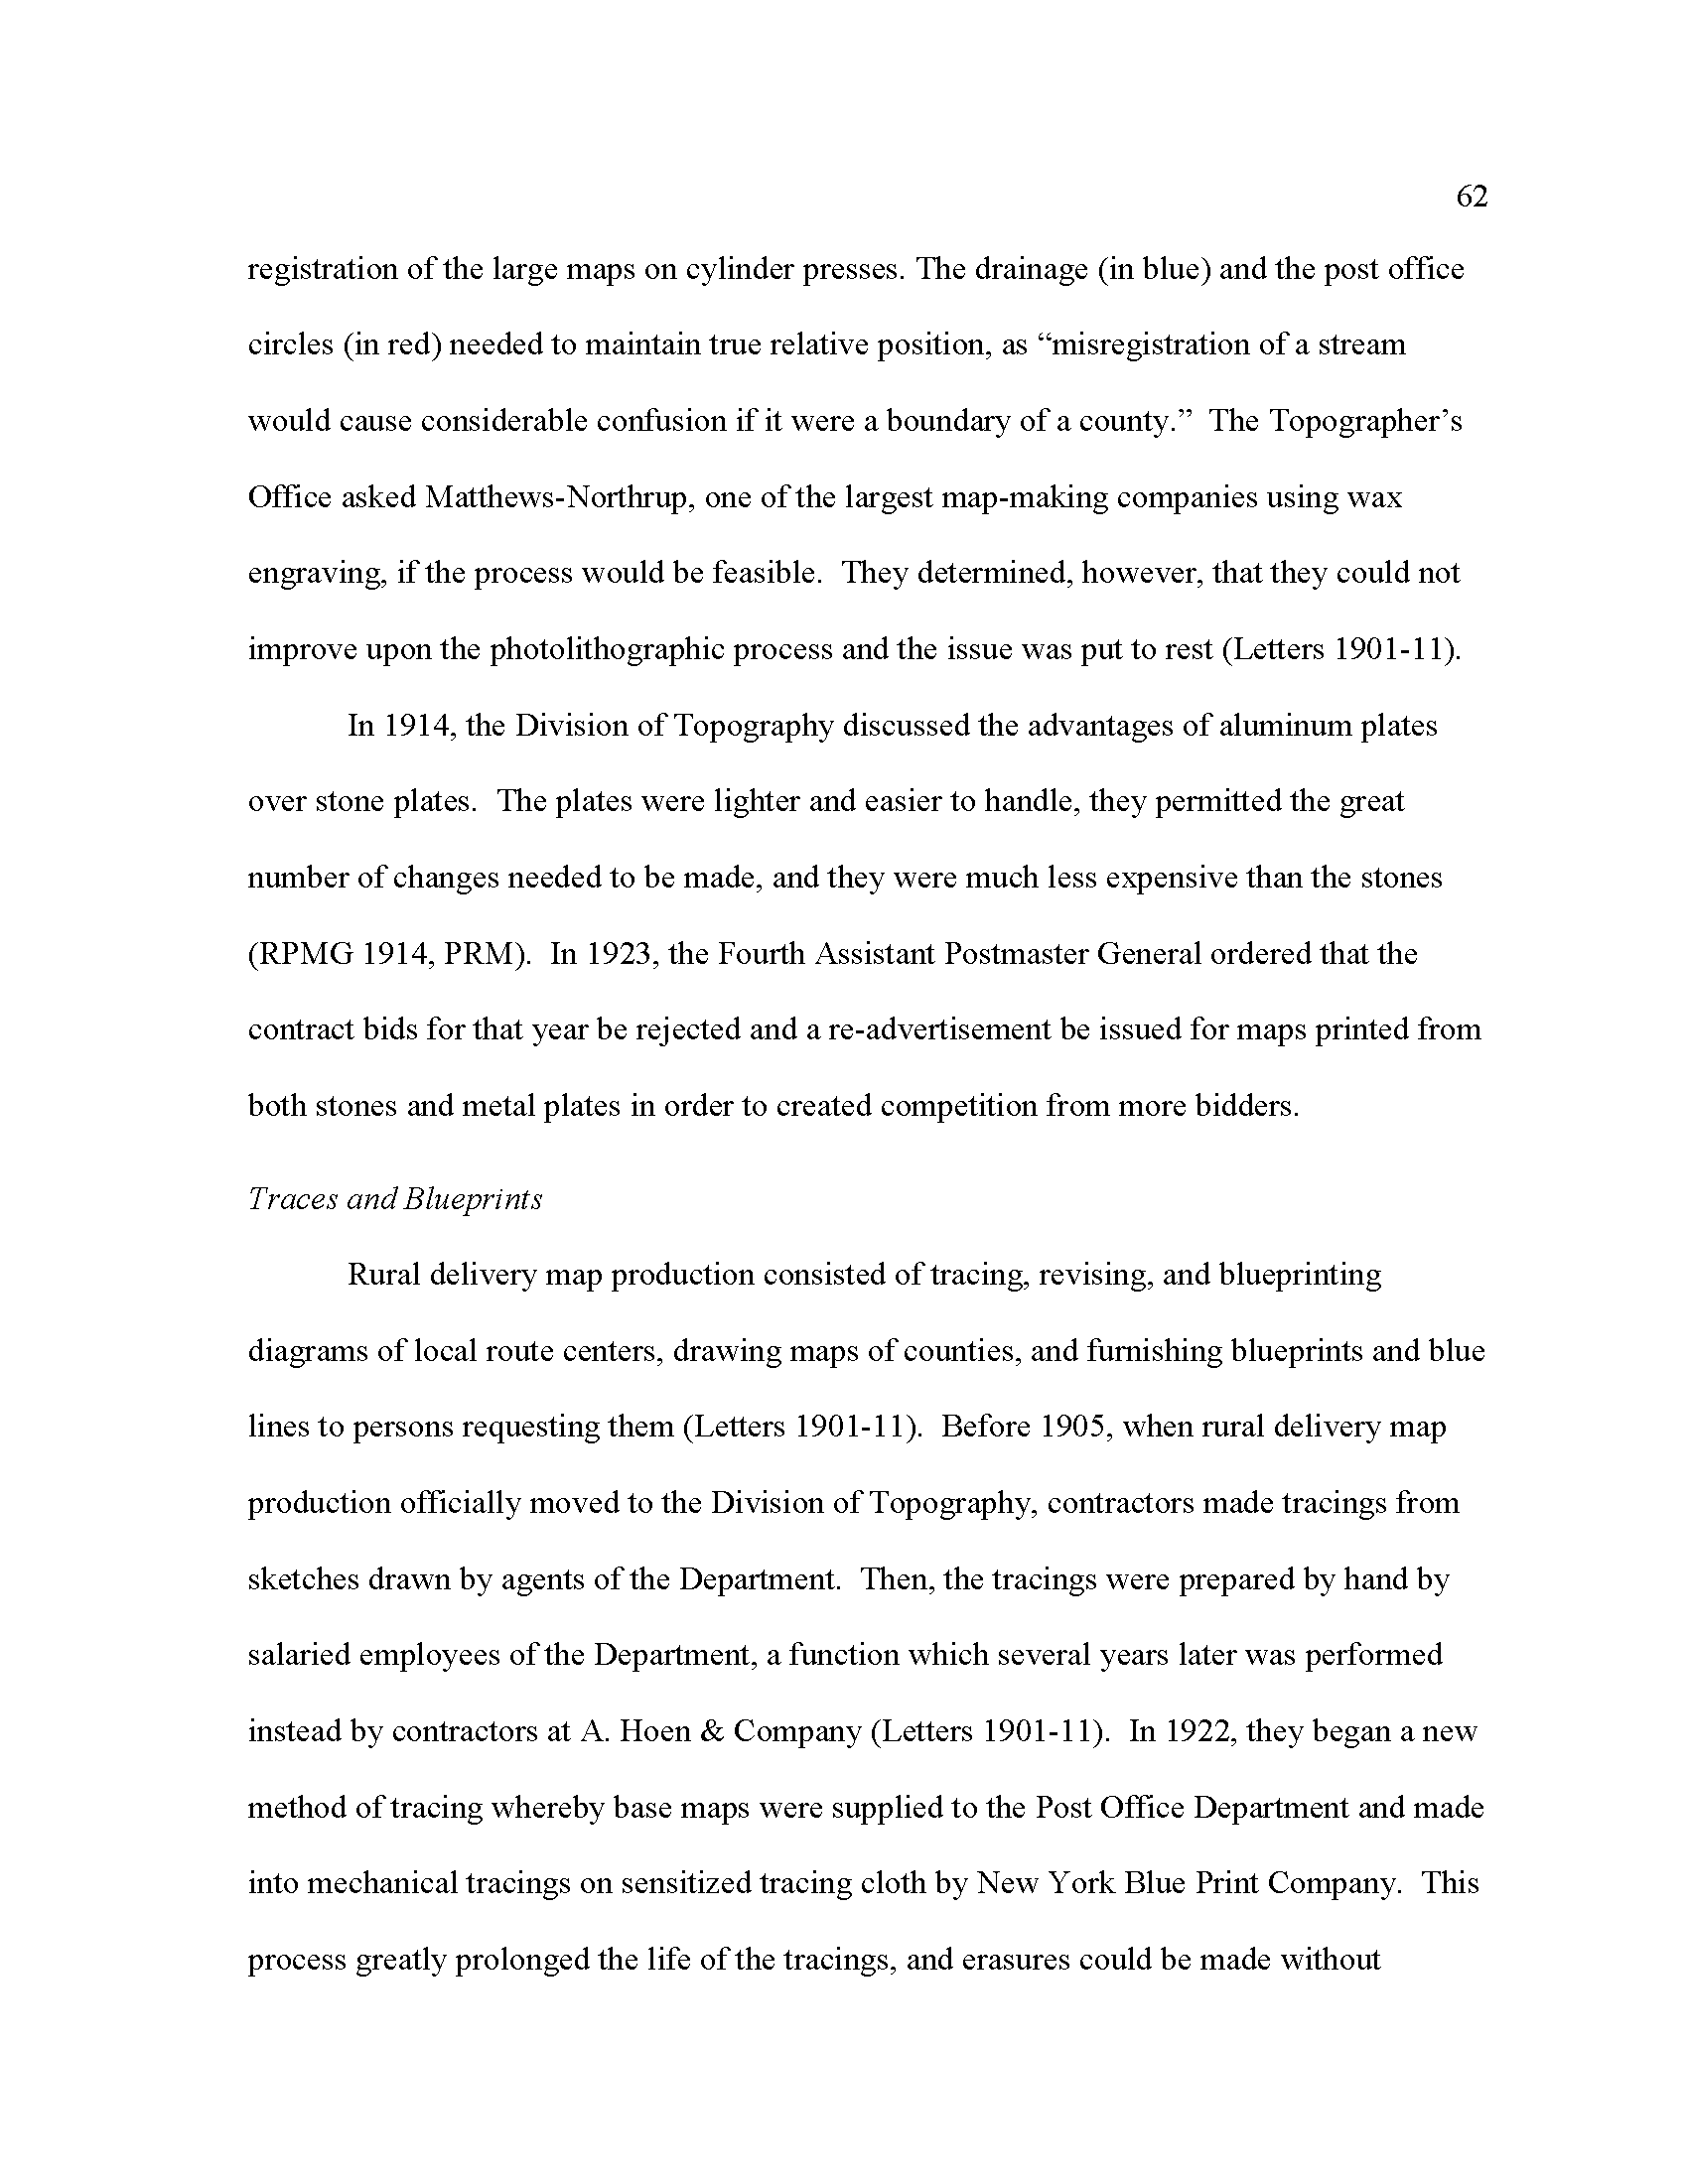 Thesis Final_Page_066.png